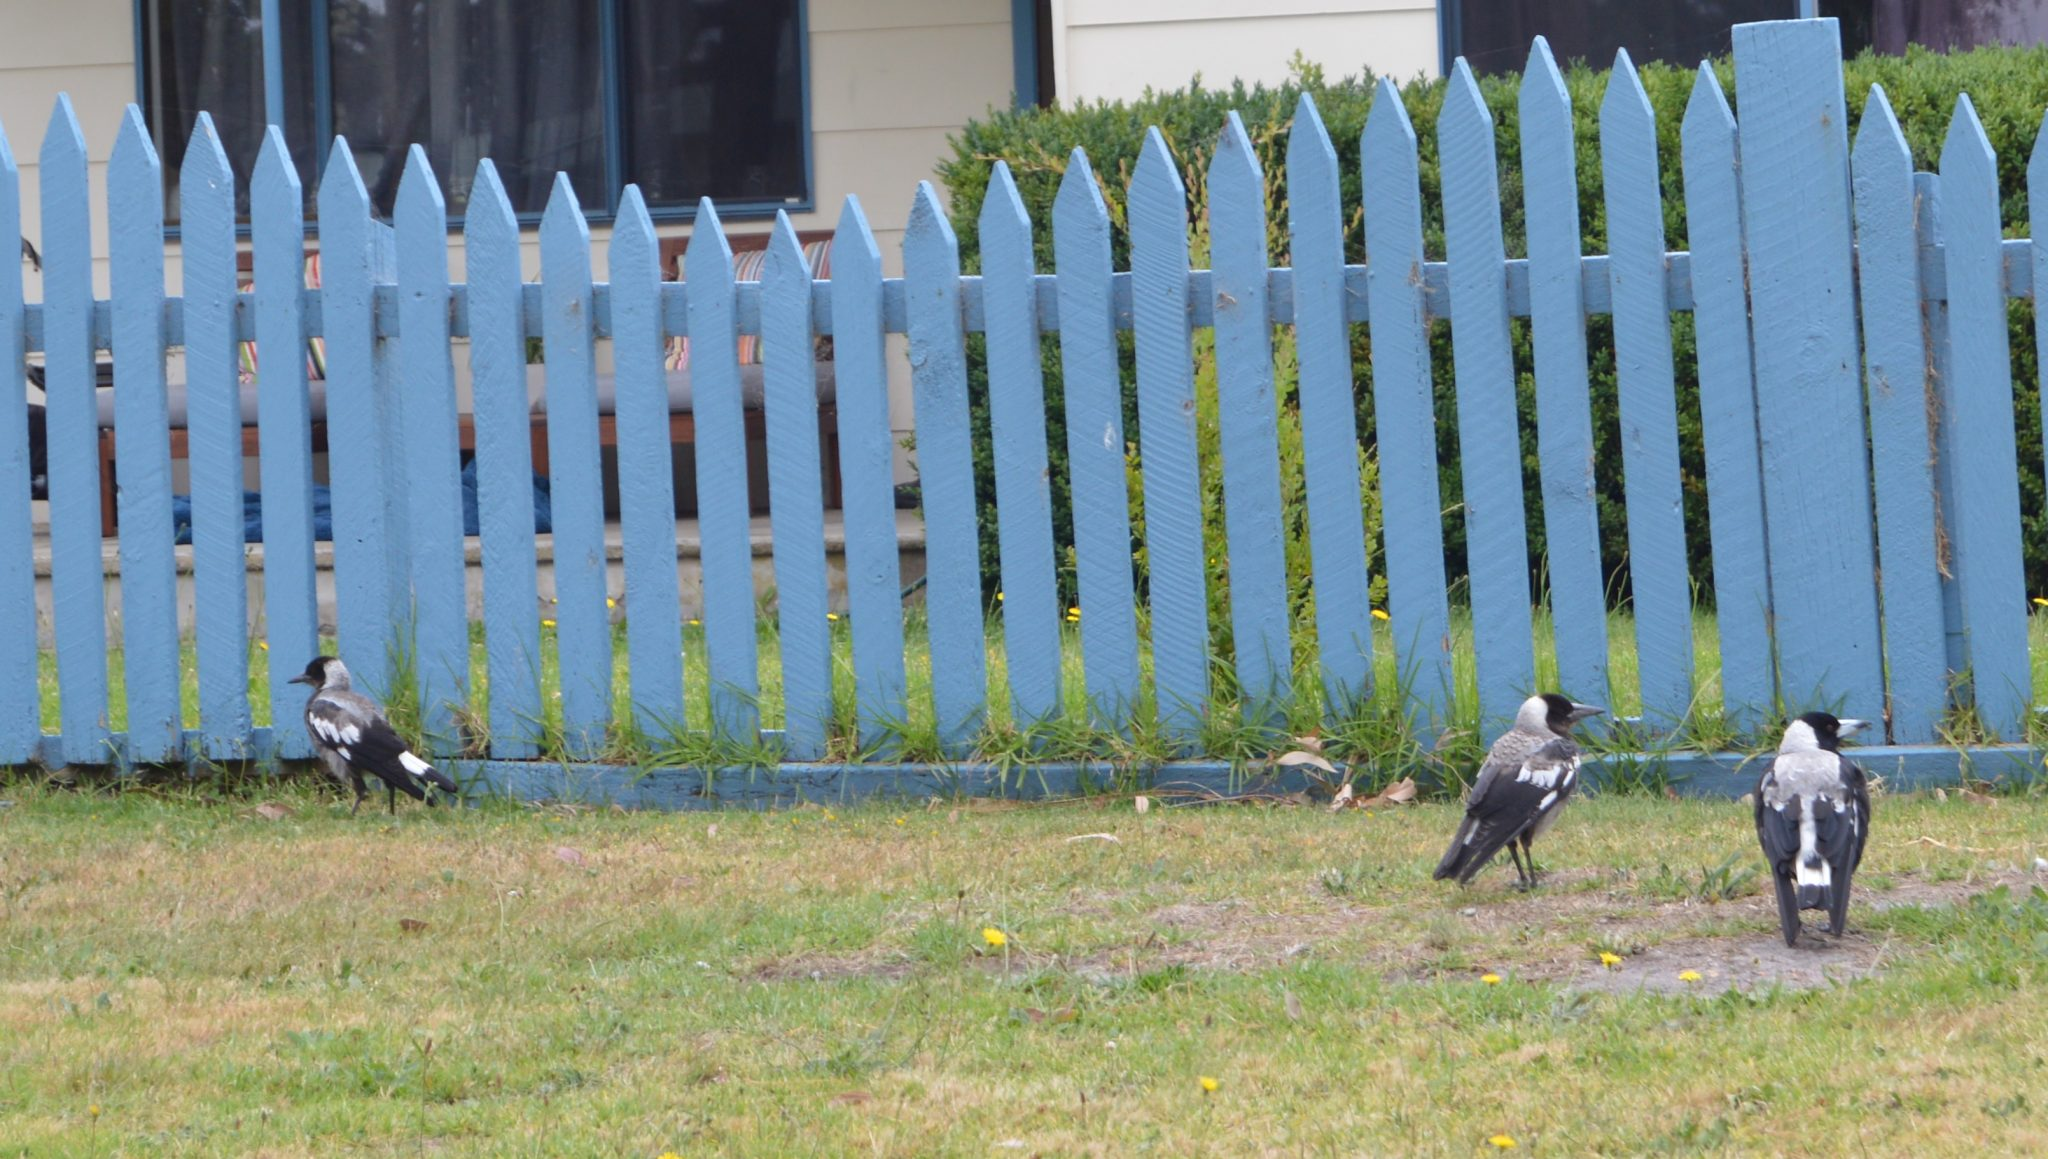 142. These wild birds, perhaps magpies, were in Wonthaggi, Victoria, Australia in December 2015.